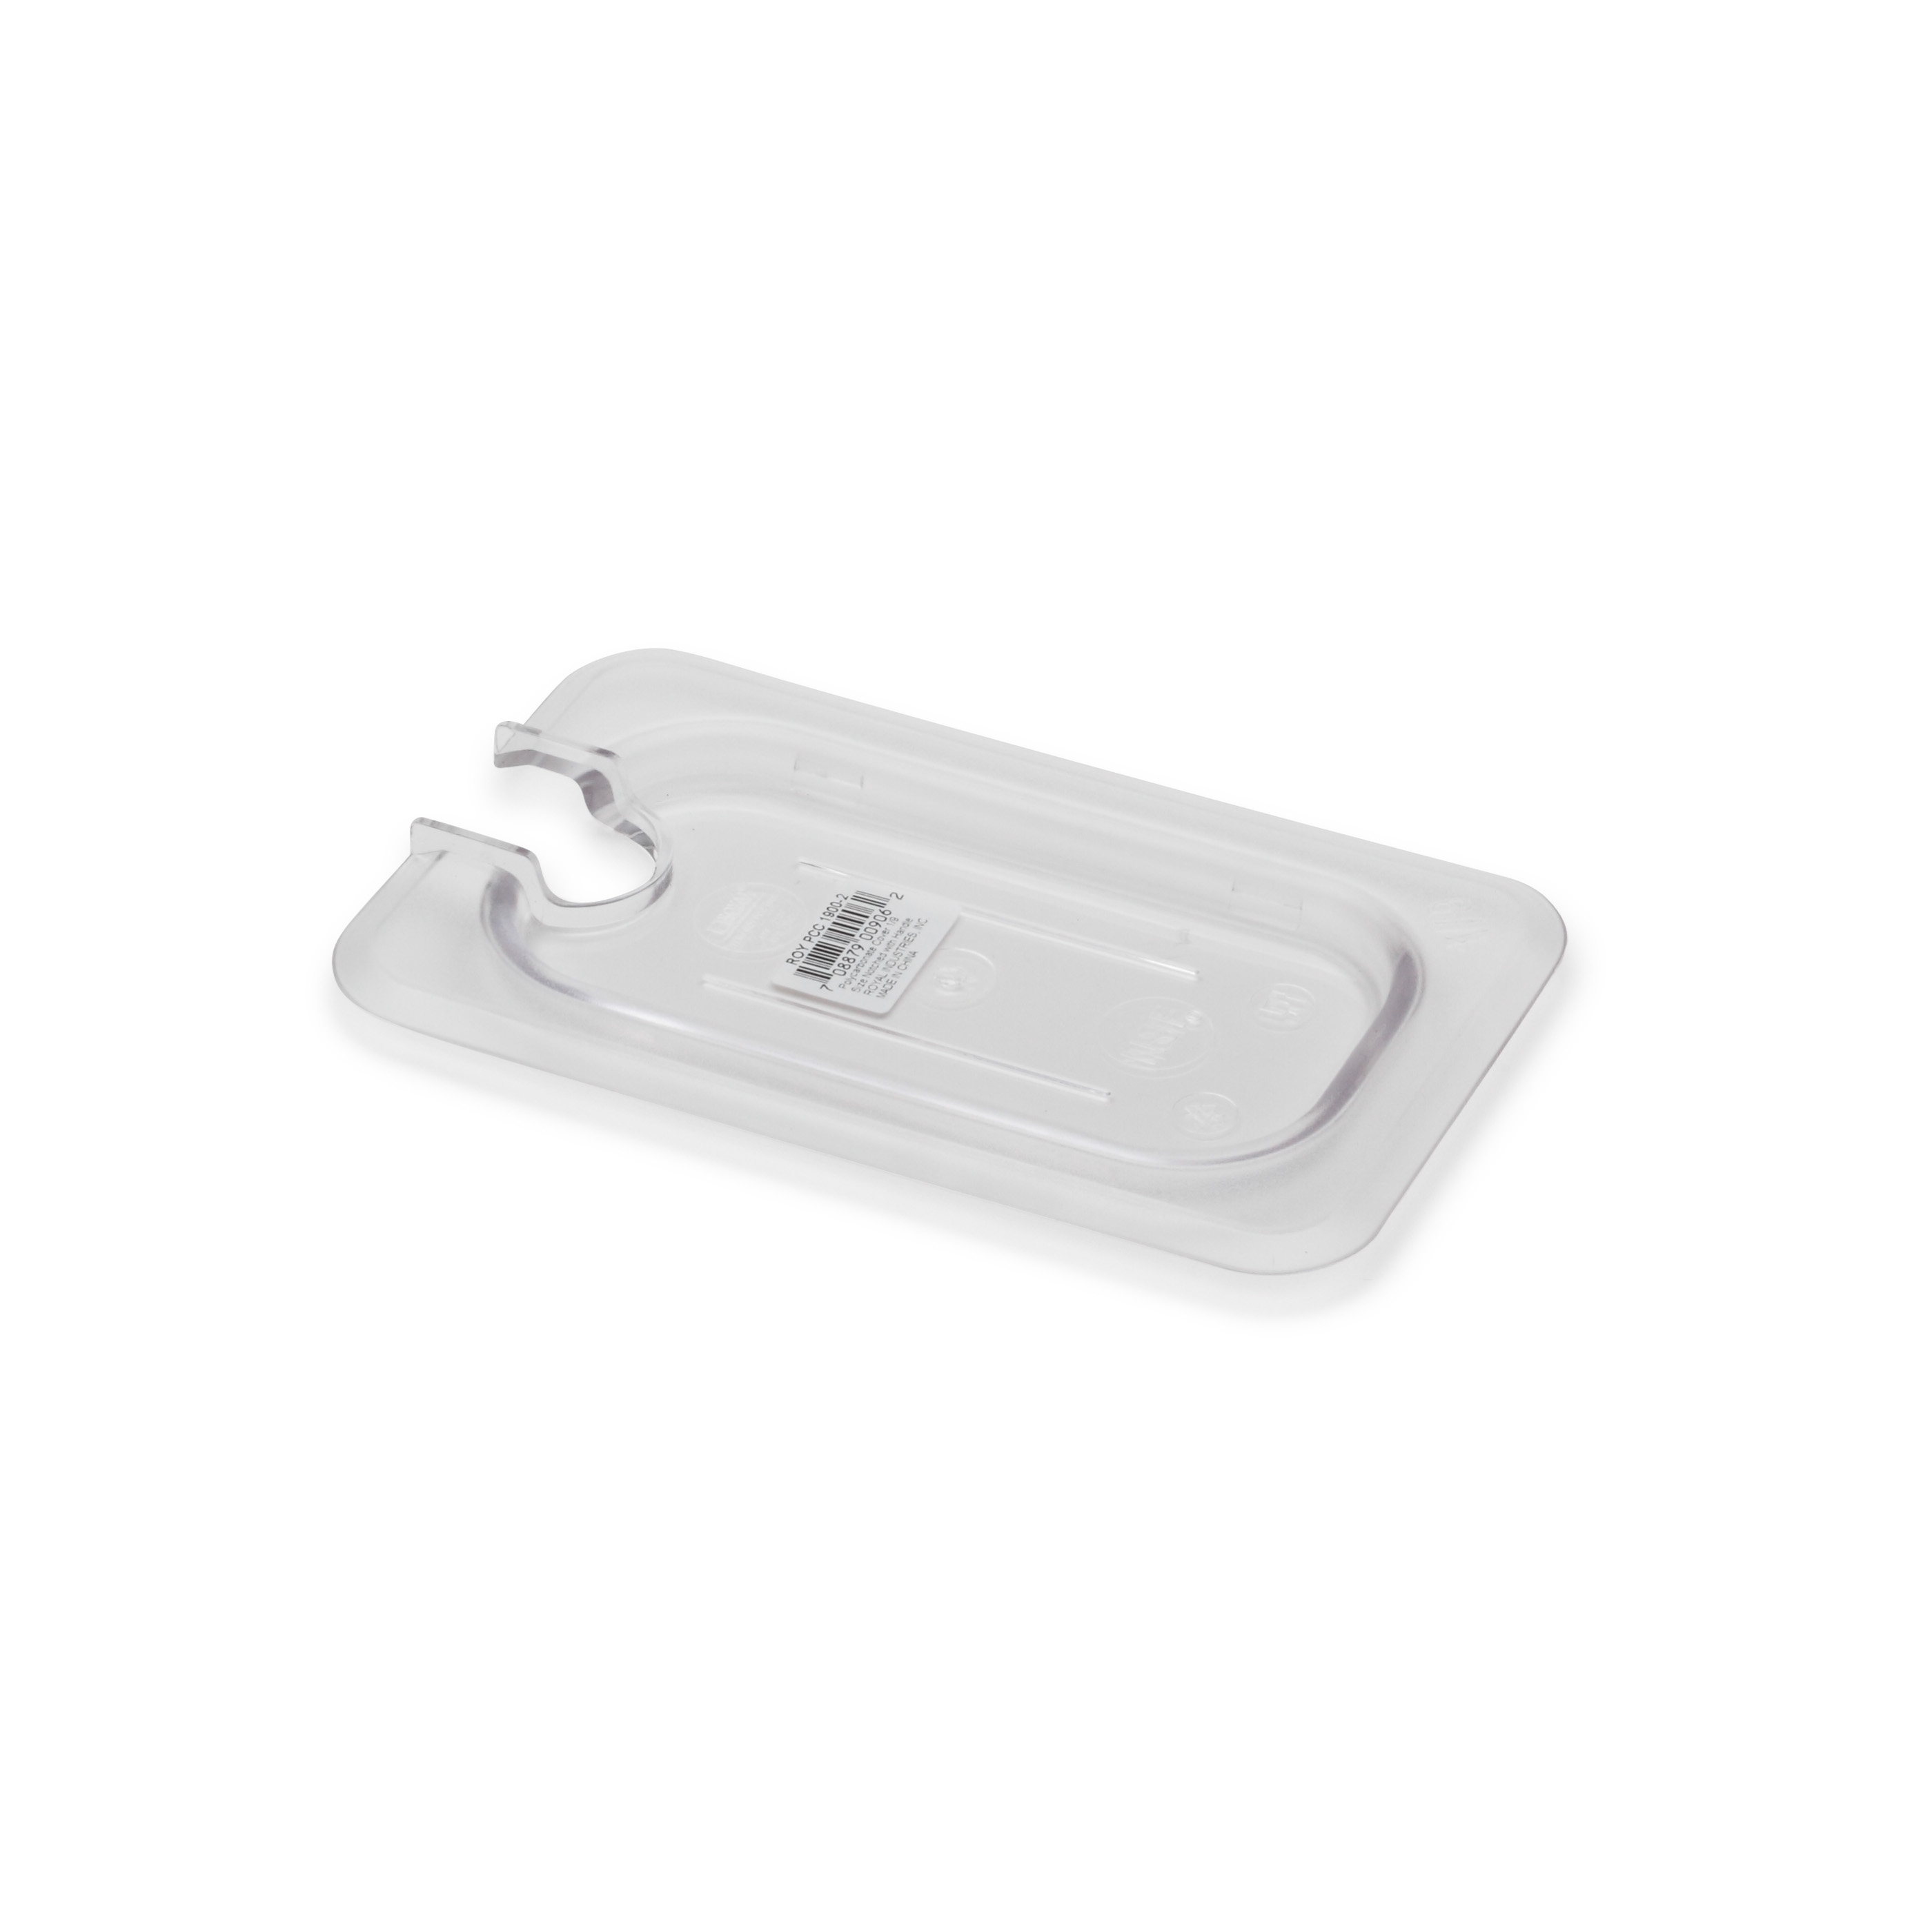 Royal Industries ROY PCC 1900-2 food pan cover, plastic